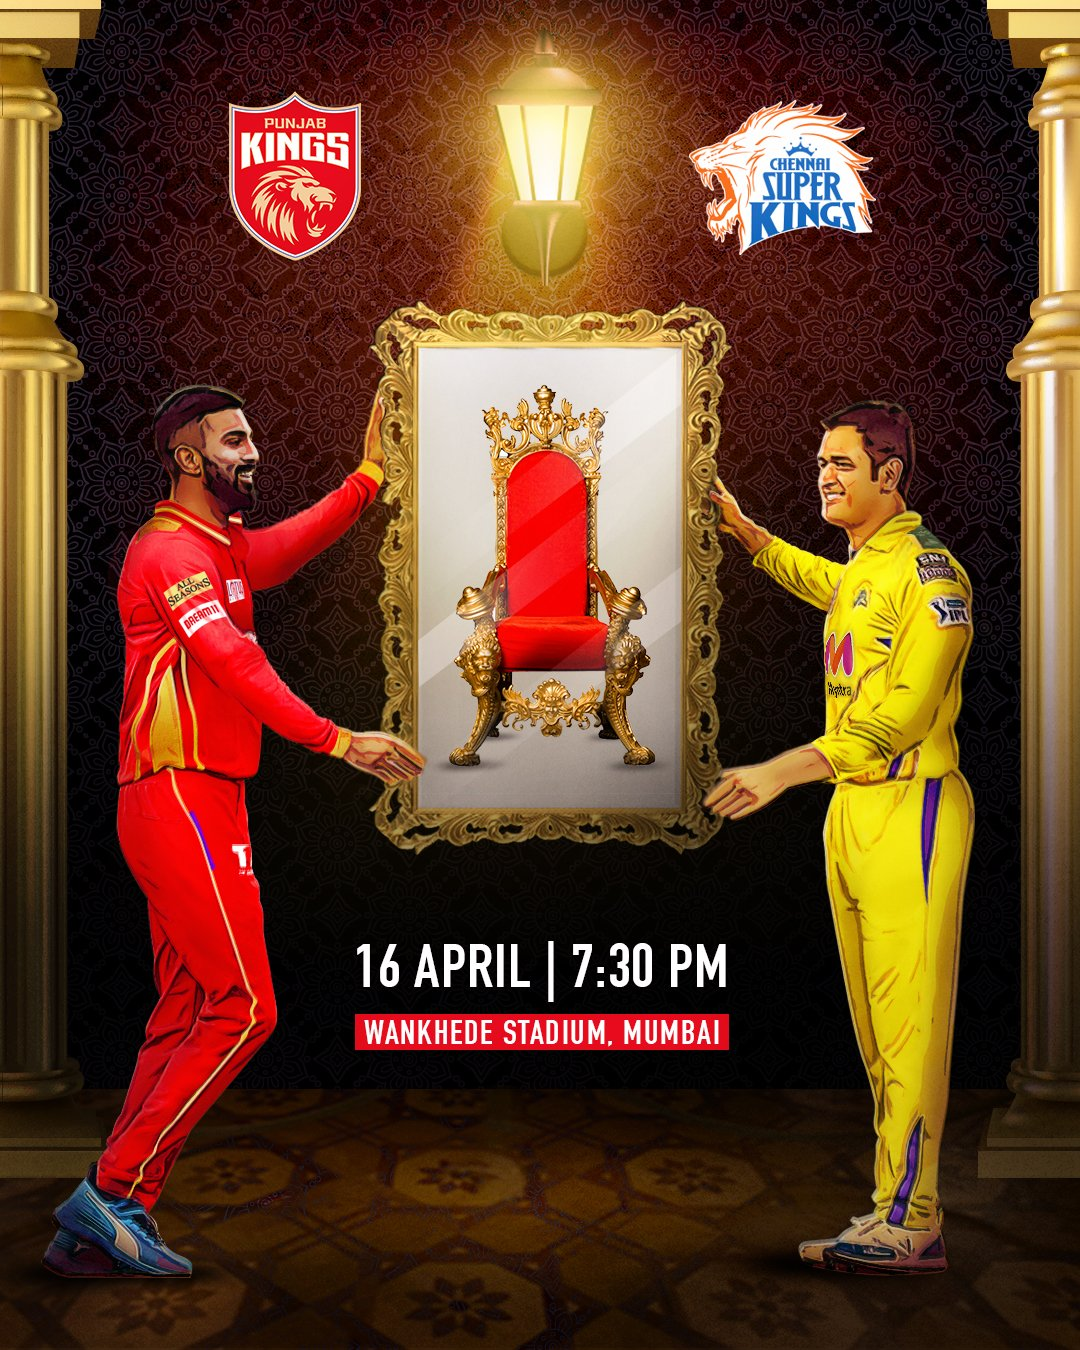 IPL 2021: PBKS VS CSK PREDICTED PLAYING 11, HEAD-TO-HEAD STATS, AND FREE LIVE STREAM DETAILS